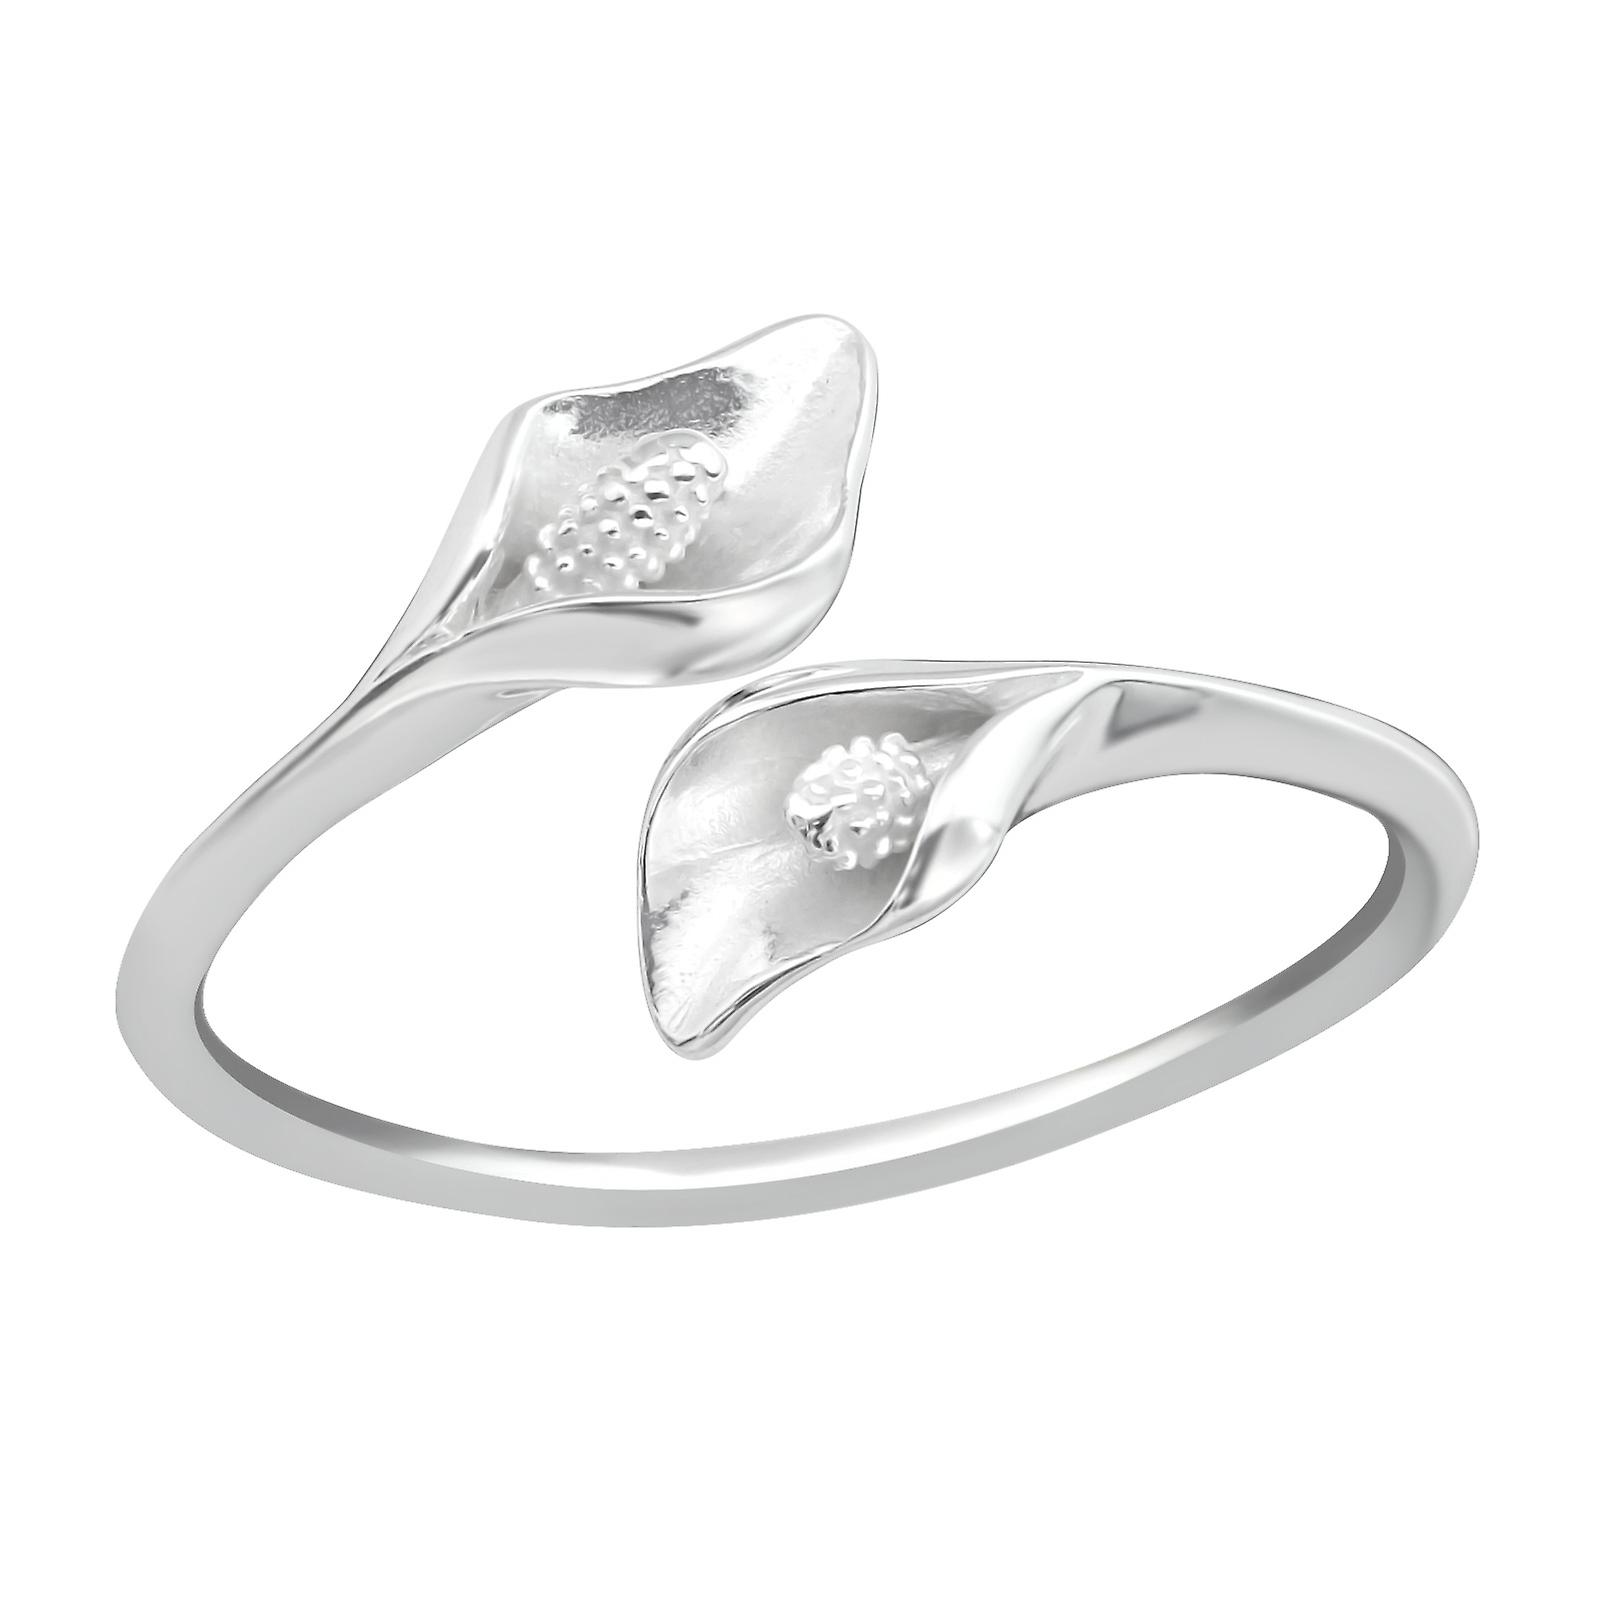 Calla Lily Flower Plain Rings 925 Sterling Silver